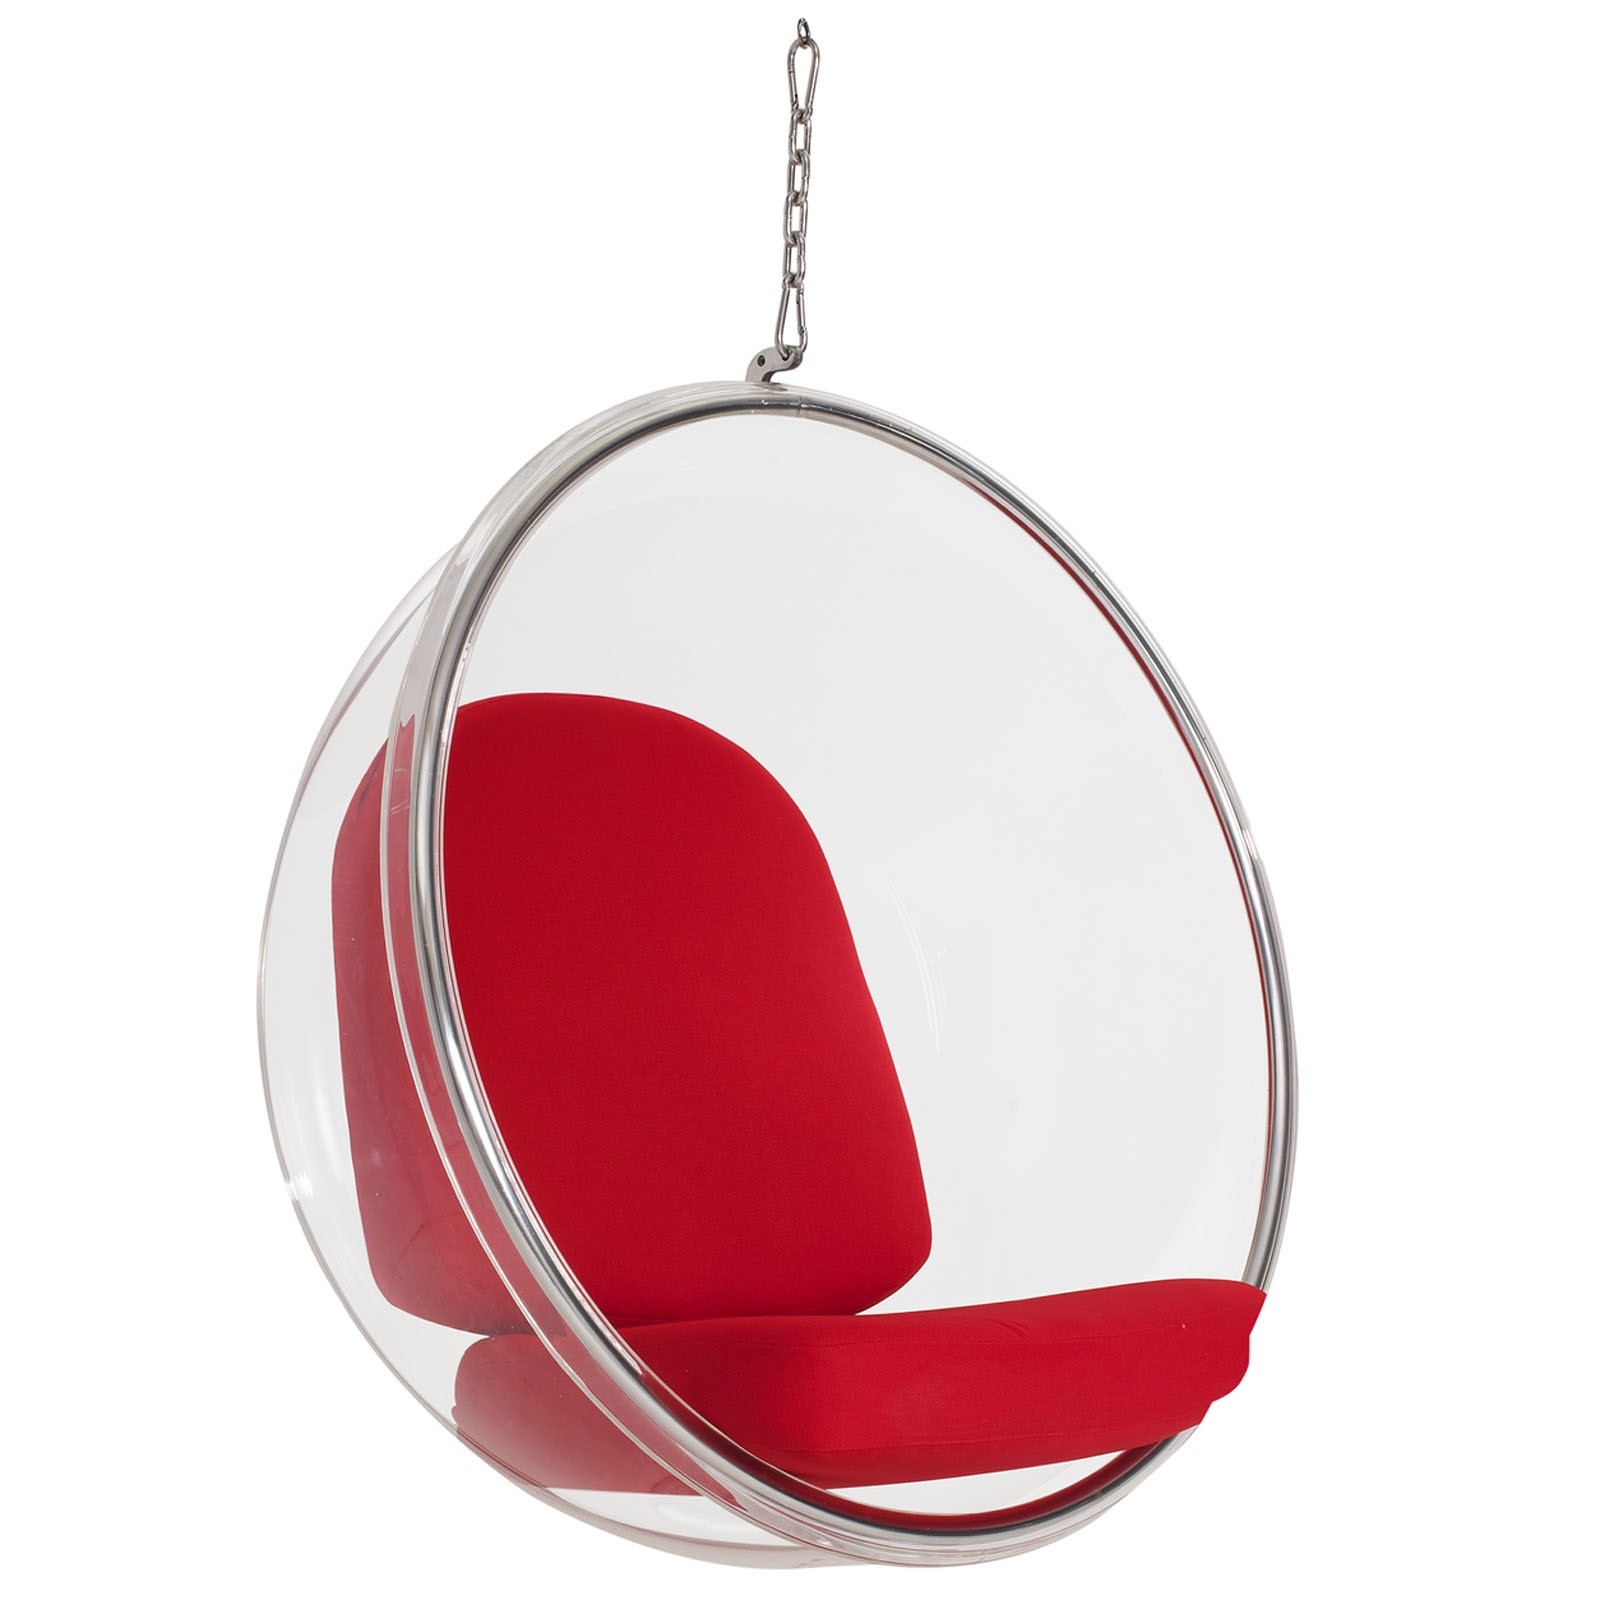 Ring Lounge Chair - Red